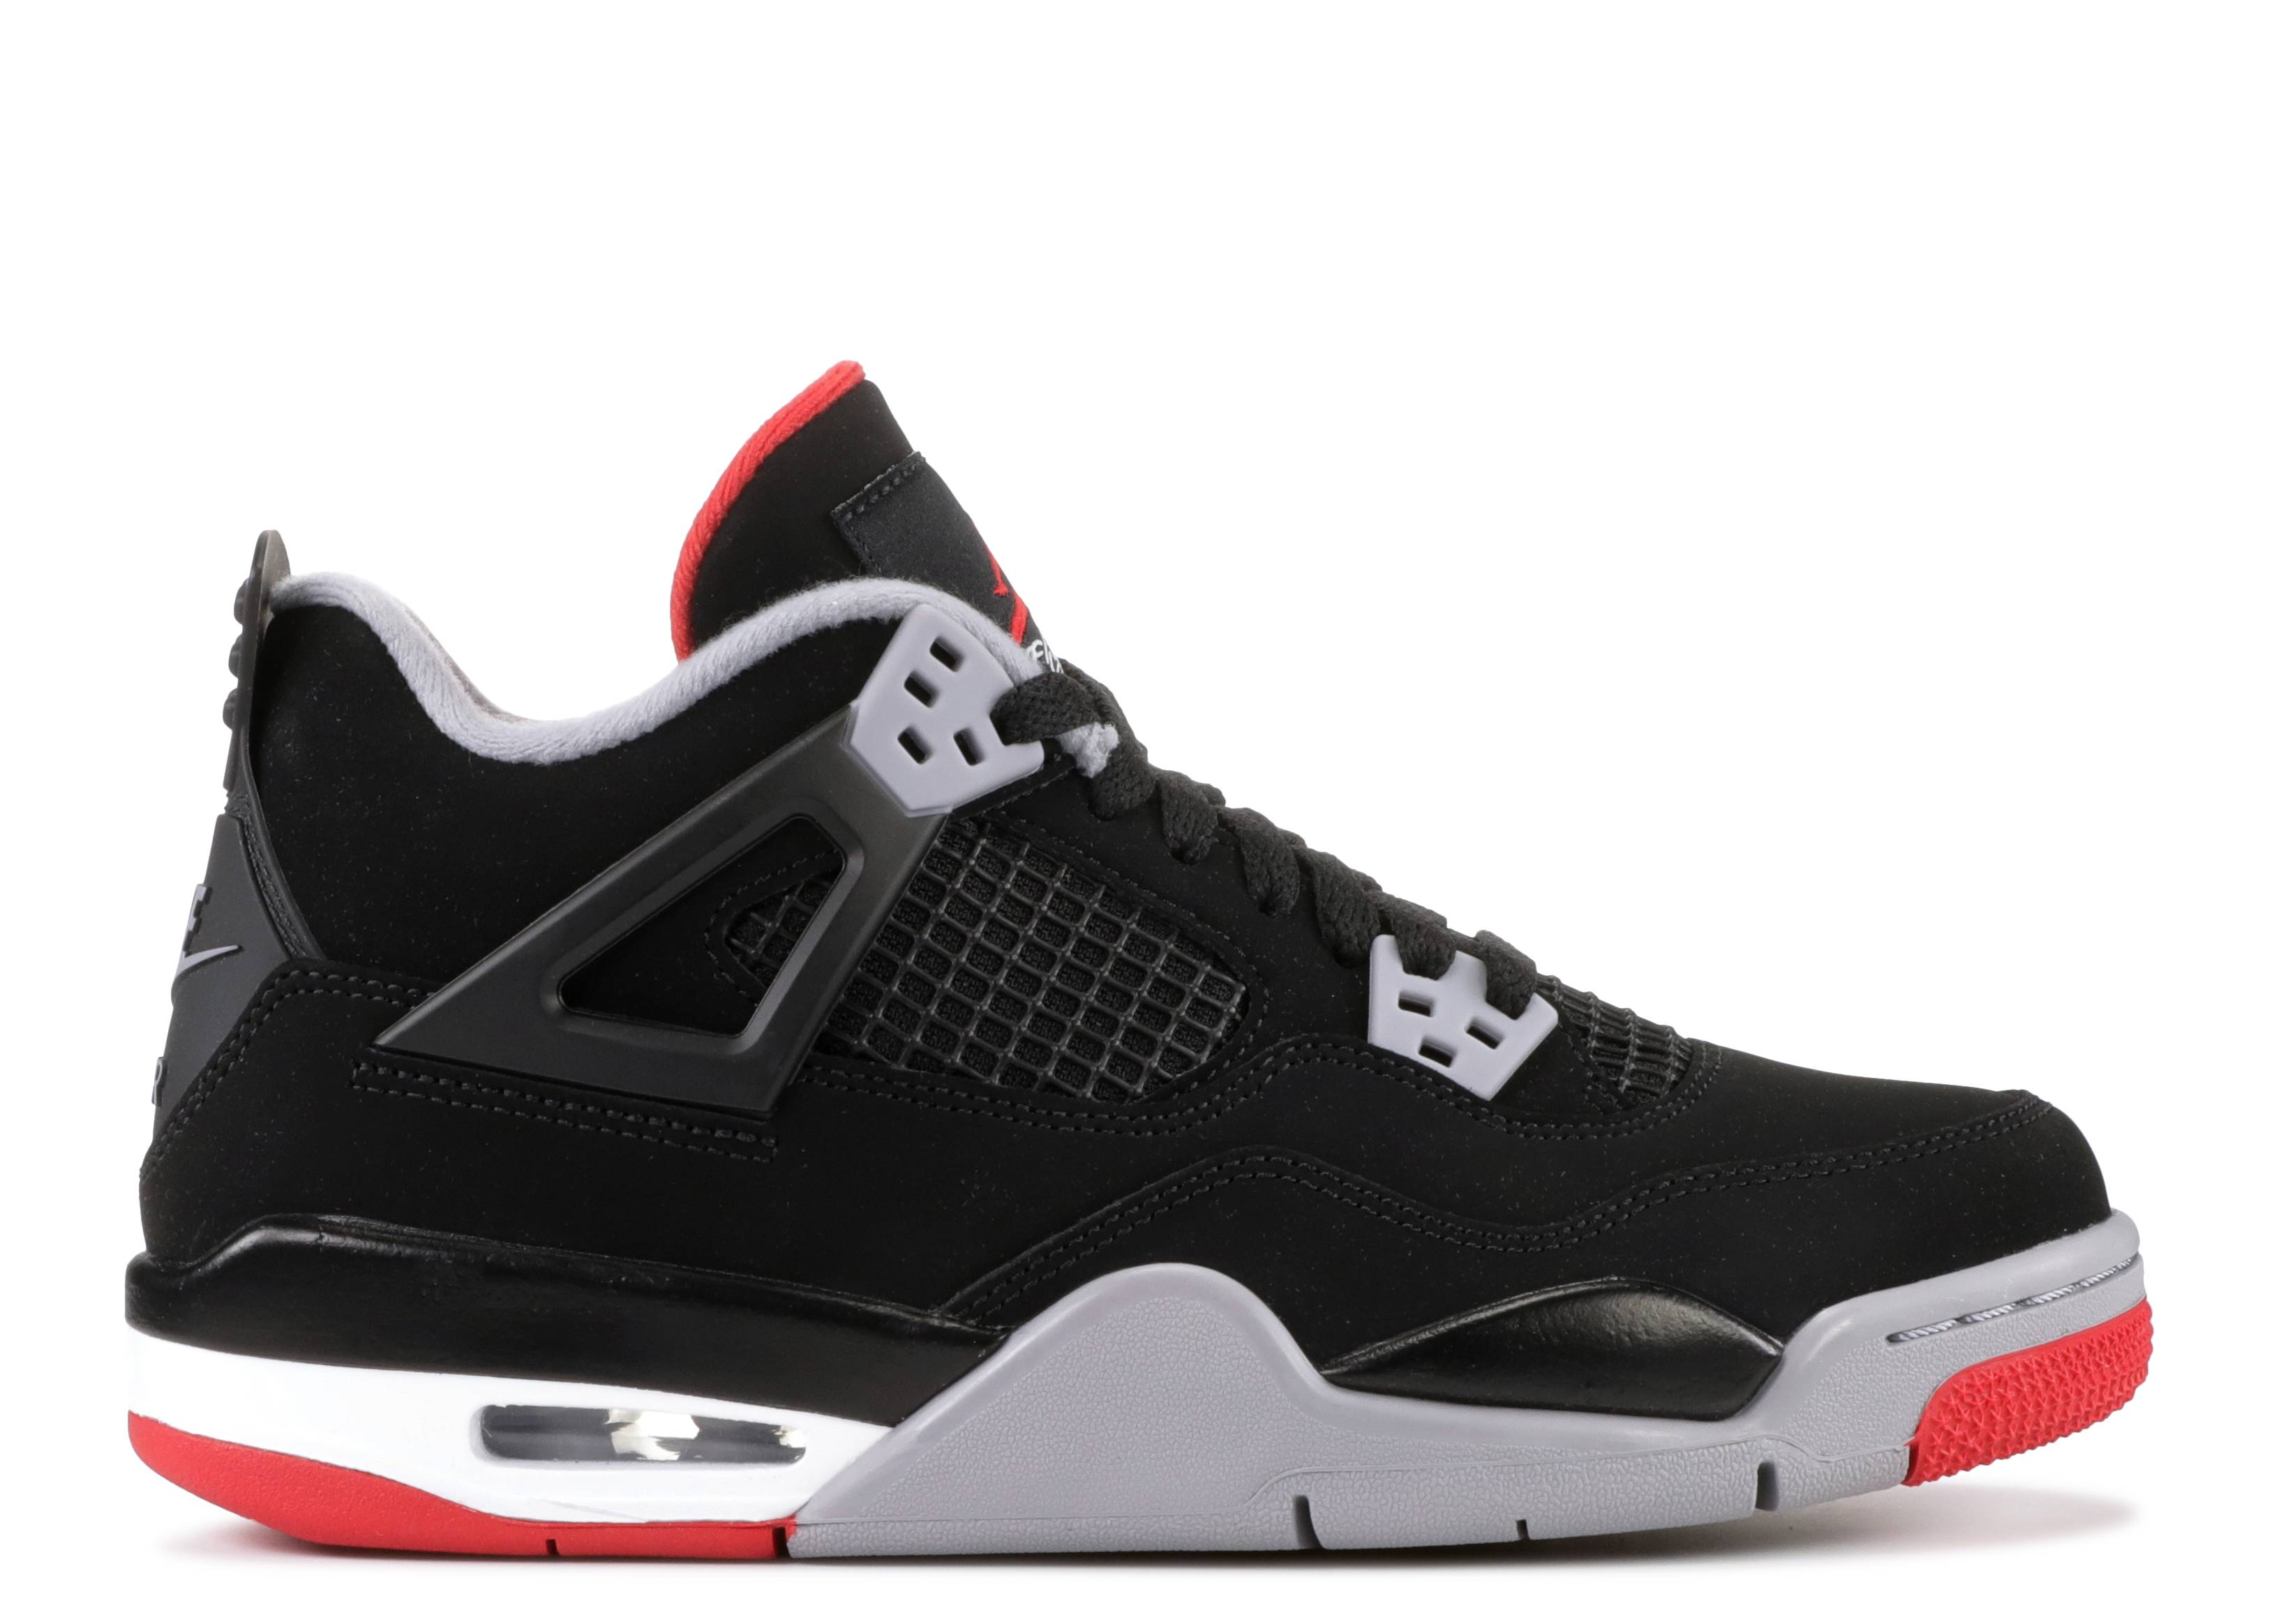 new arrival e022f e13fa Air Jordan 4 (IV) Shoes - Nike | Flight Club